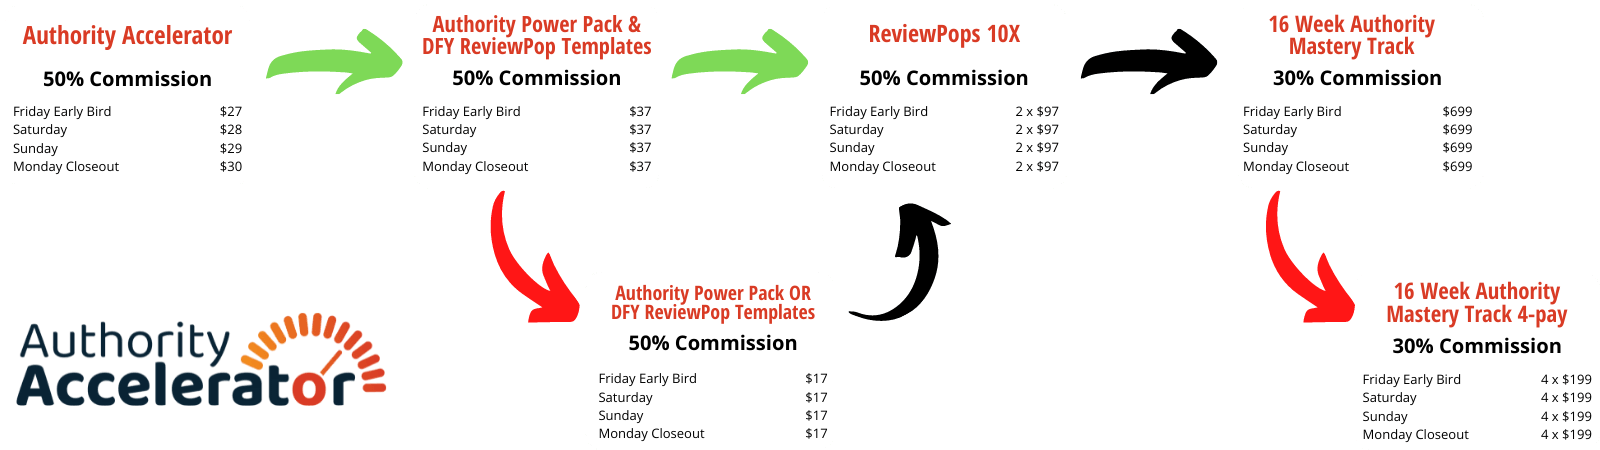 Authority Accelerator Review: Pricing & Upsells